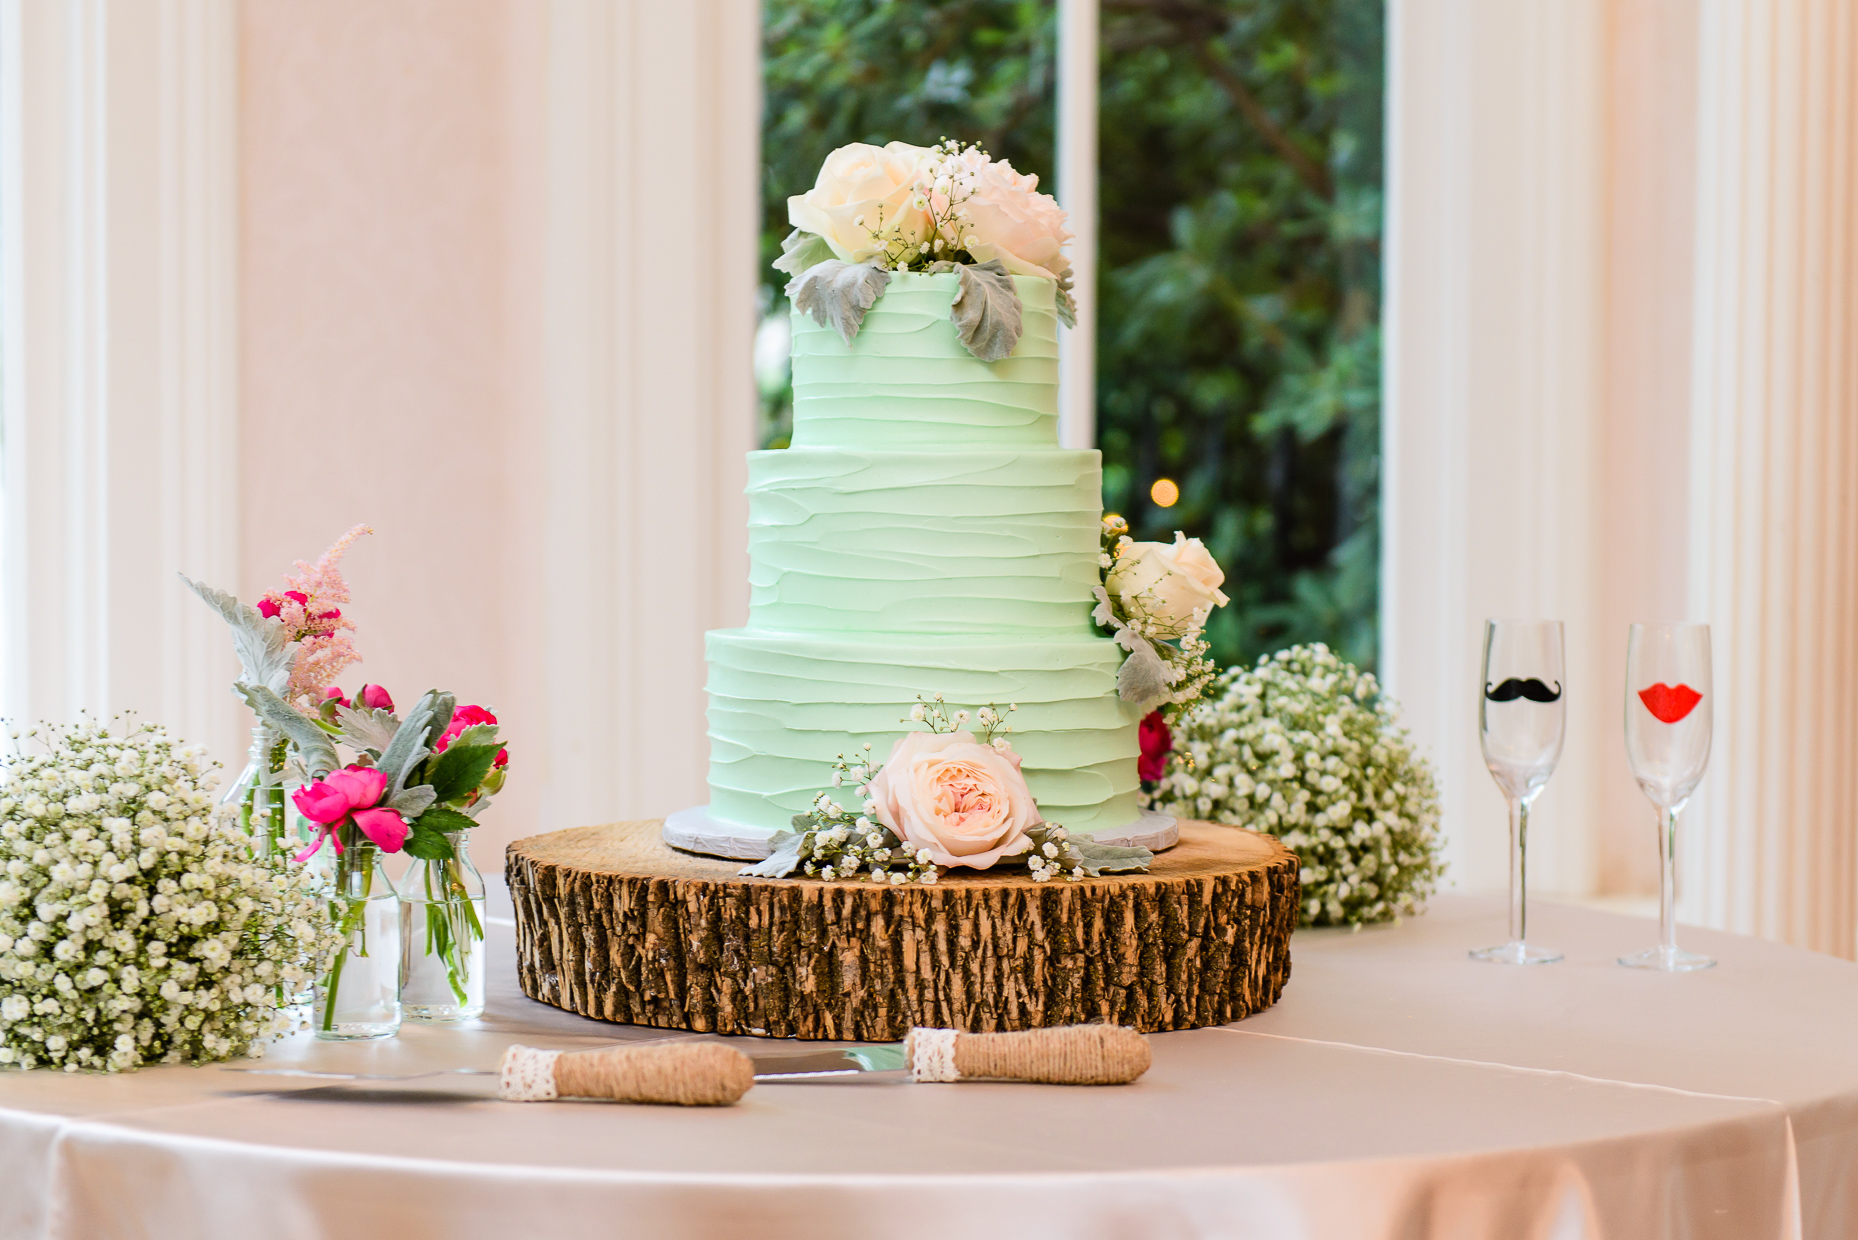 Austin-wedding-photographer-allan-house-cake-michelle-patisserie-mint-green